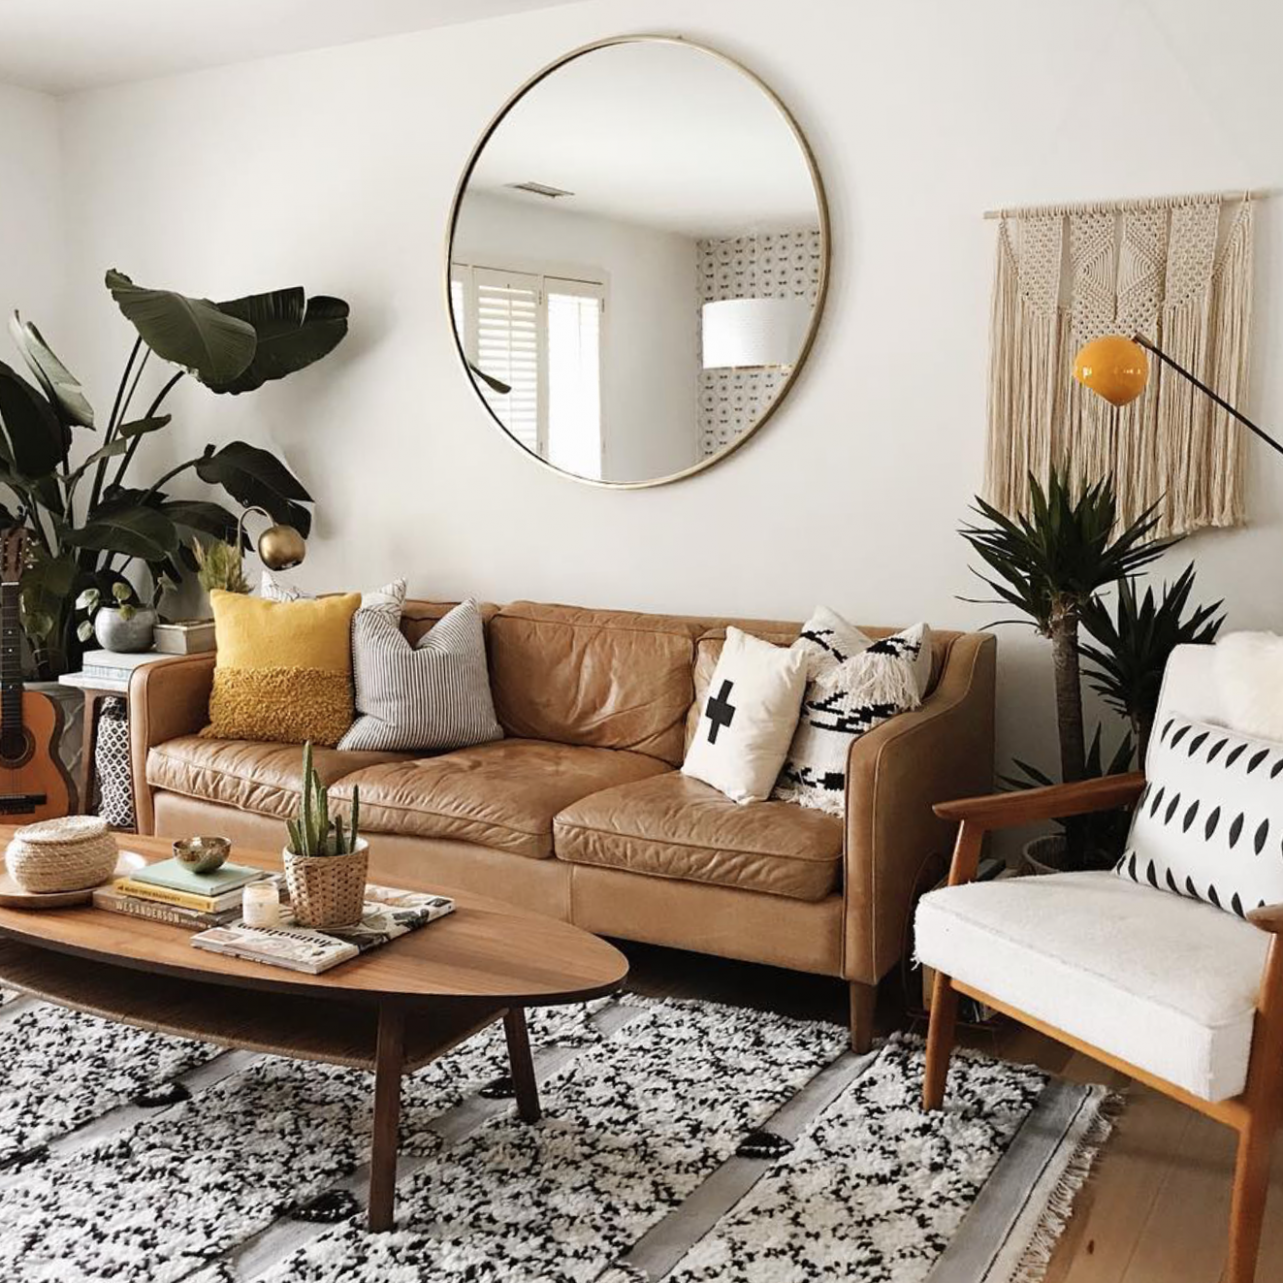 10 Apartment Decorating and Small Living Room Ideas  The Anastasia Co - Apartment Living Room Decor Ideas